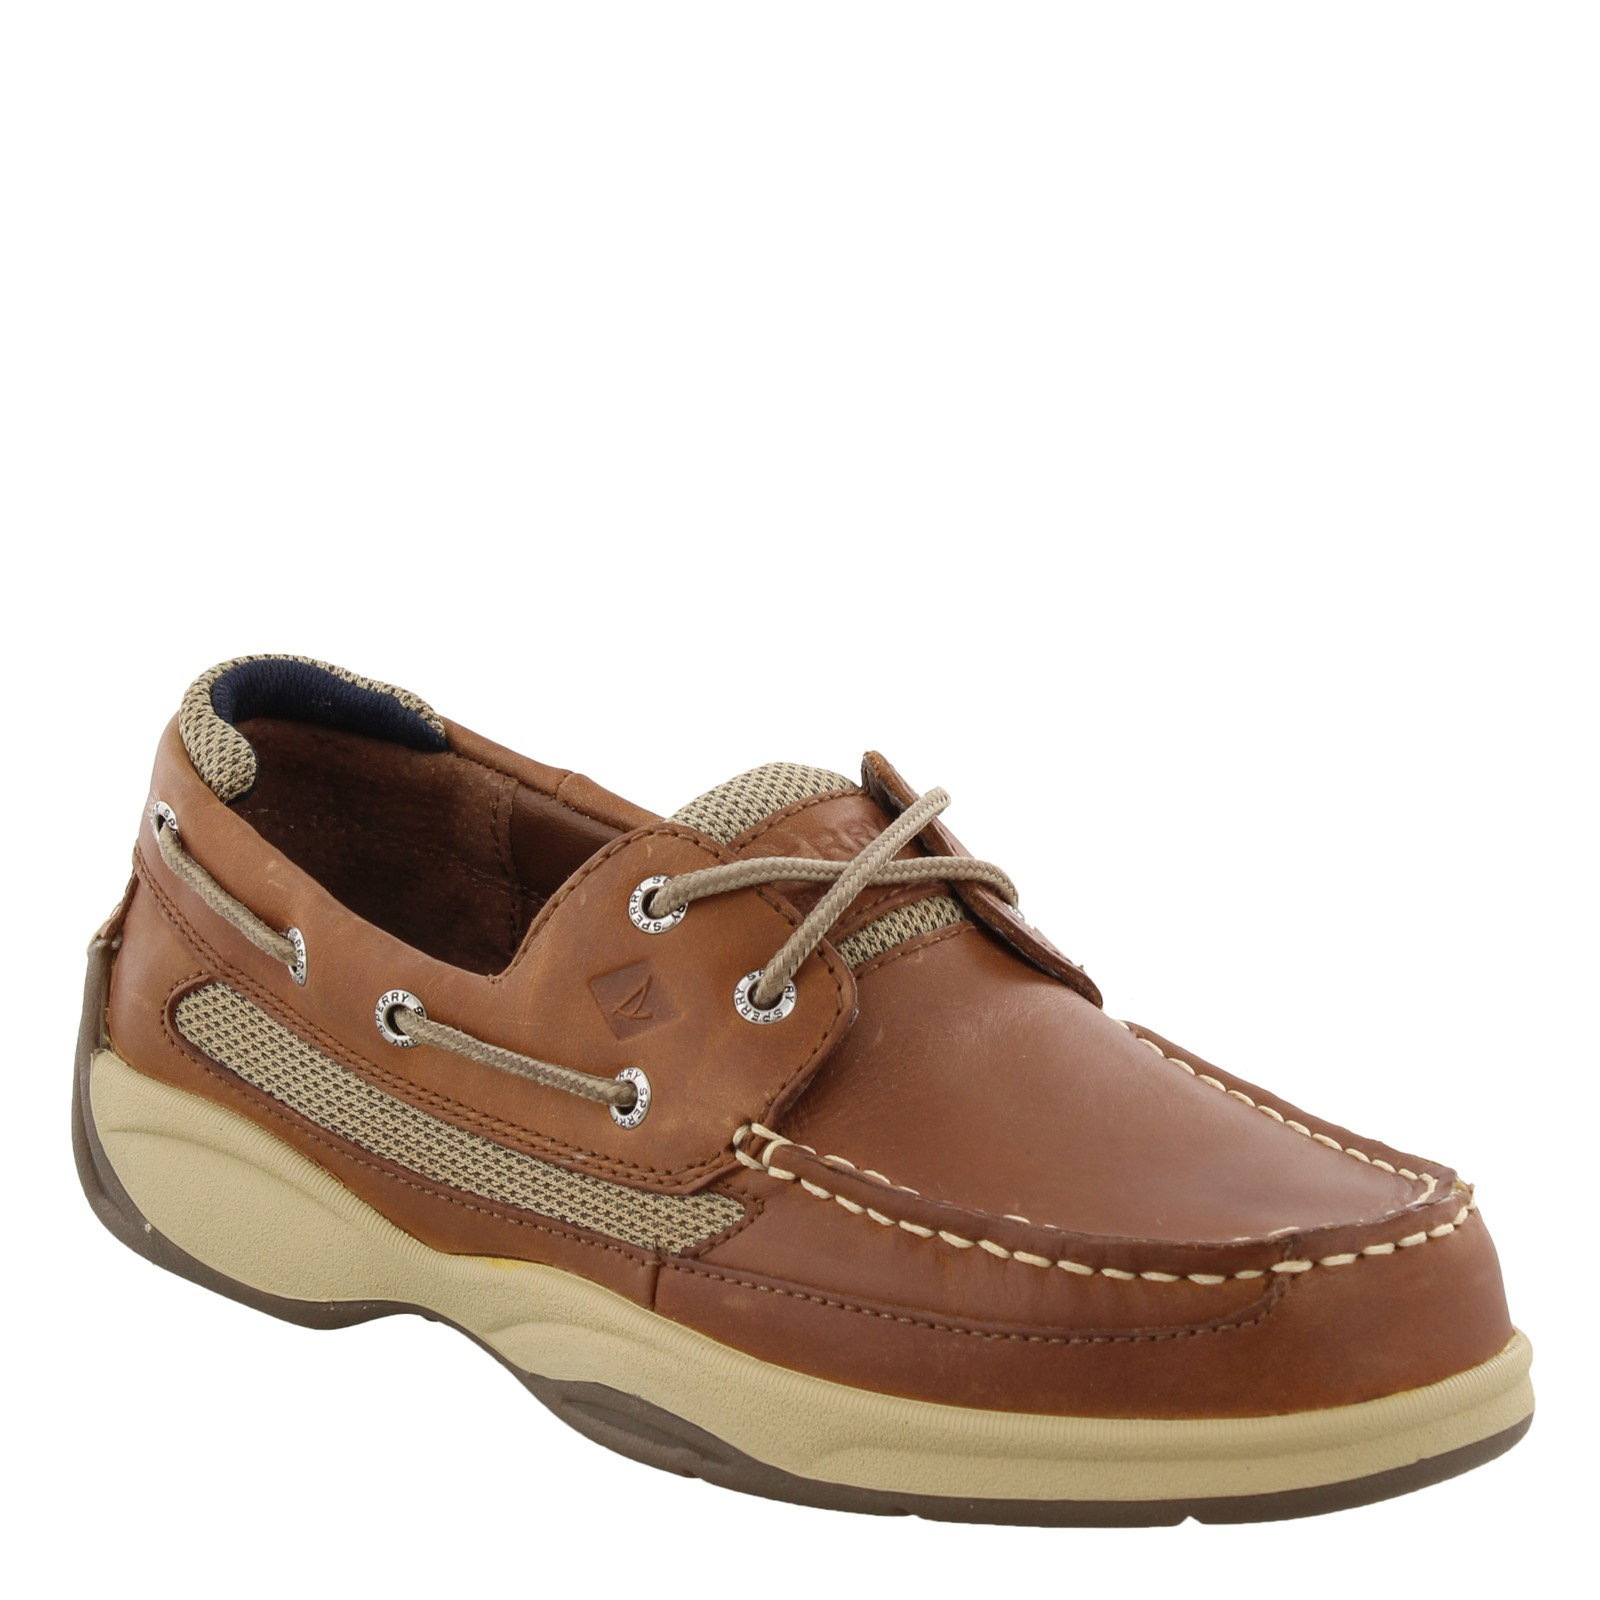 Men's Sperry, Lanyard 2 Eye Lace up Boat Shoe